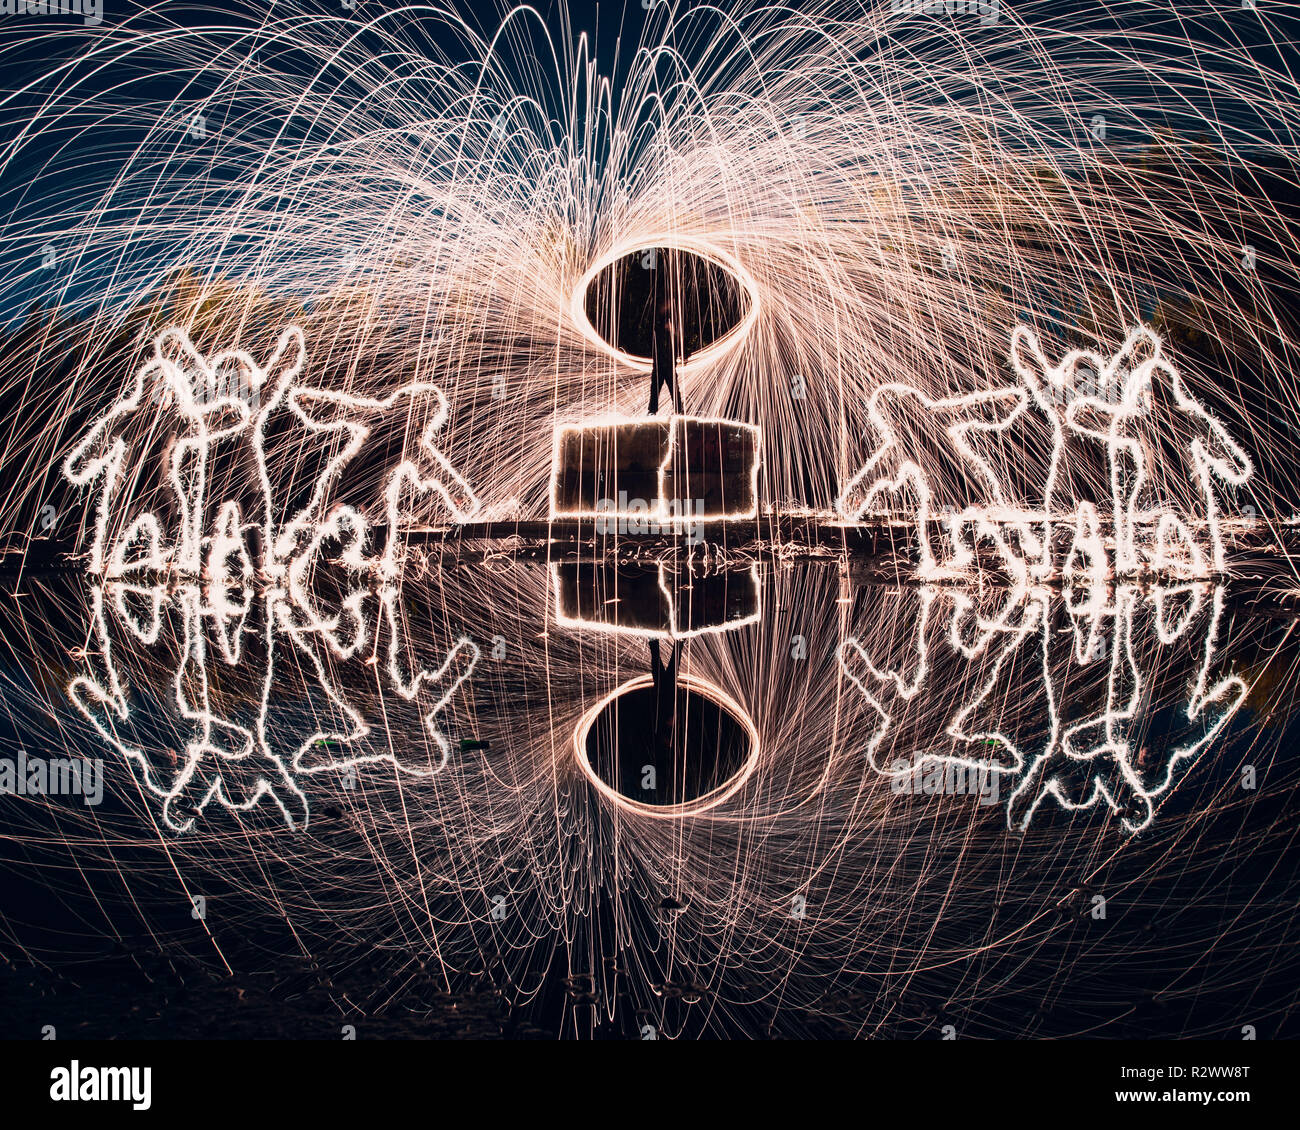 Steel wool spinning and light painting with reflections and people shaped from sparklers Stock Photo